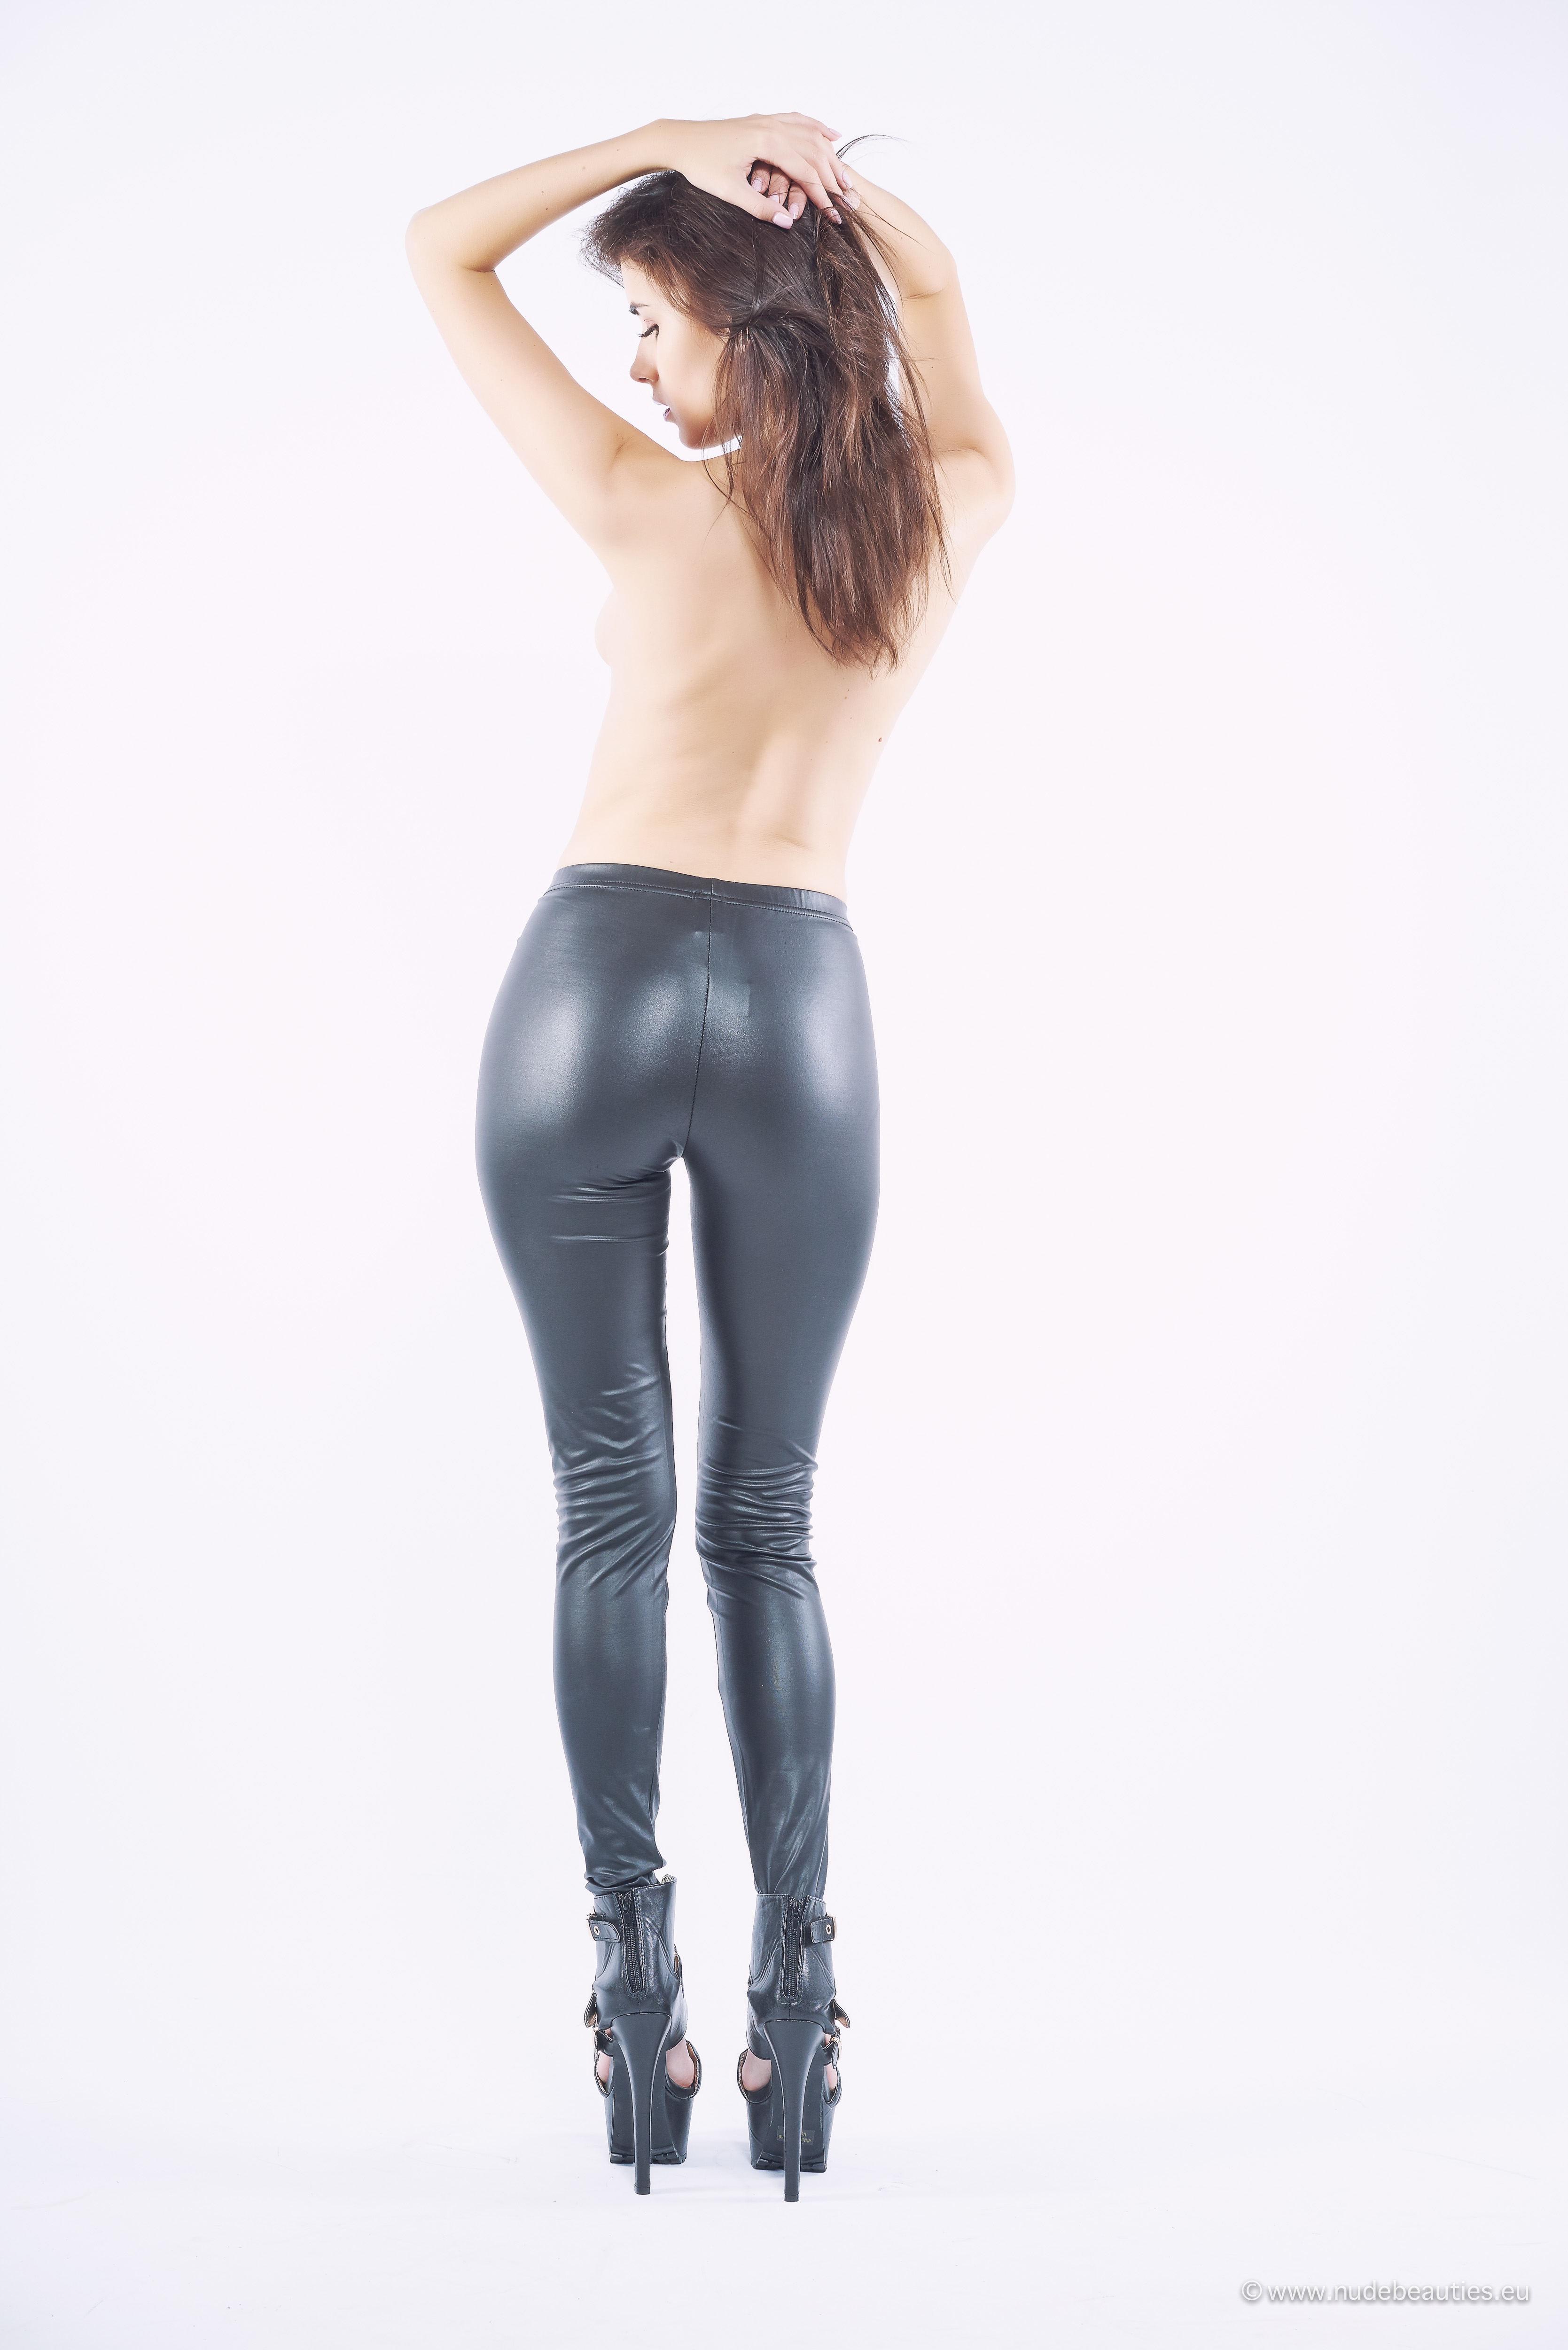 Oct 24,  · Leggings - Leggings are thicker then tights and are usually made from nylon or polyester with a bit on spandex for exploreblogirvd.gq are also skin tight and have become very popular from the athleisure trend. Many companies have changed there dress codes and women are switching from wearing tights to leggings.